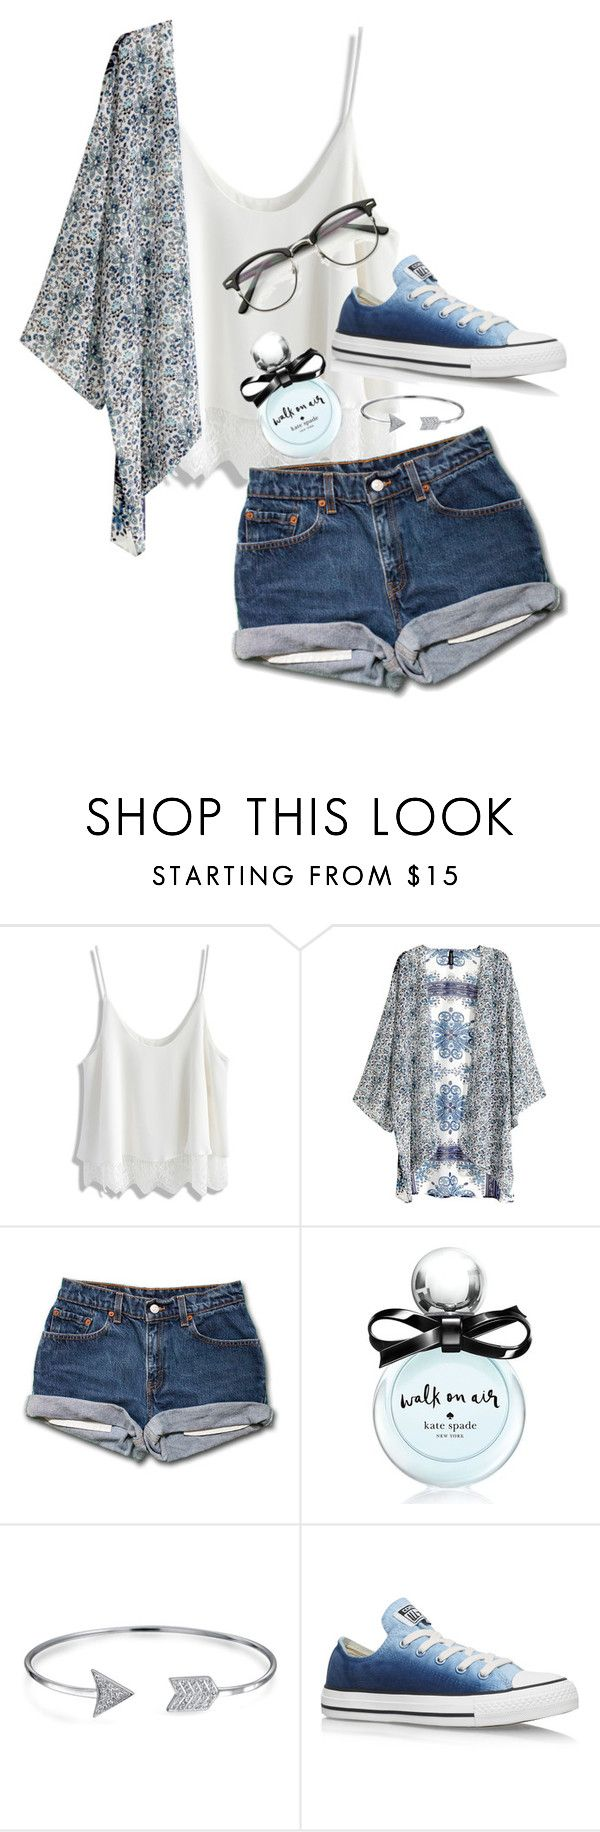 """""""Getting New Glasses"""" by syds-fashion-4-ever ❤ liked on Polyvore featuring Chicwish, H&M, Kate Spade, Bling Jewelry and Converse"""